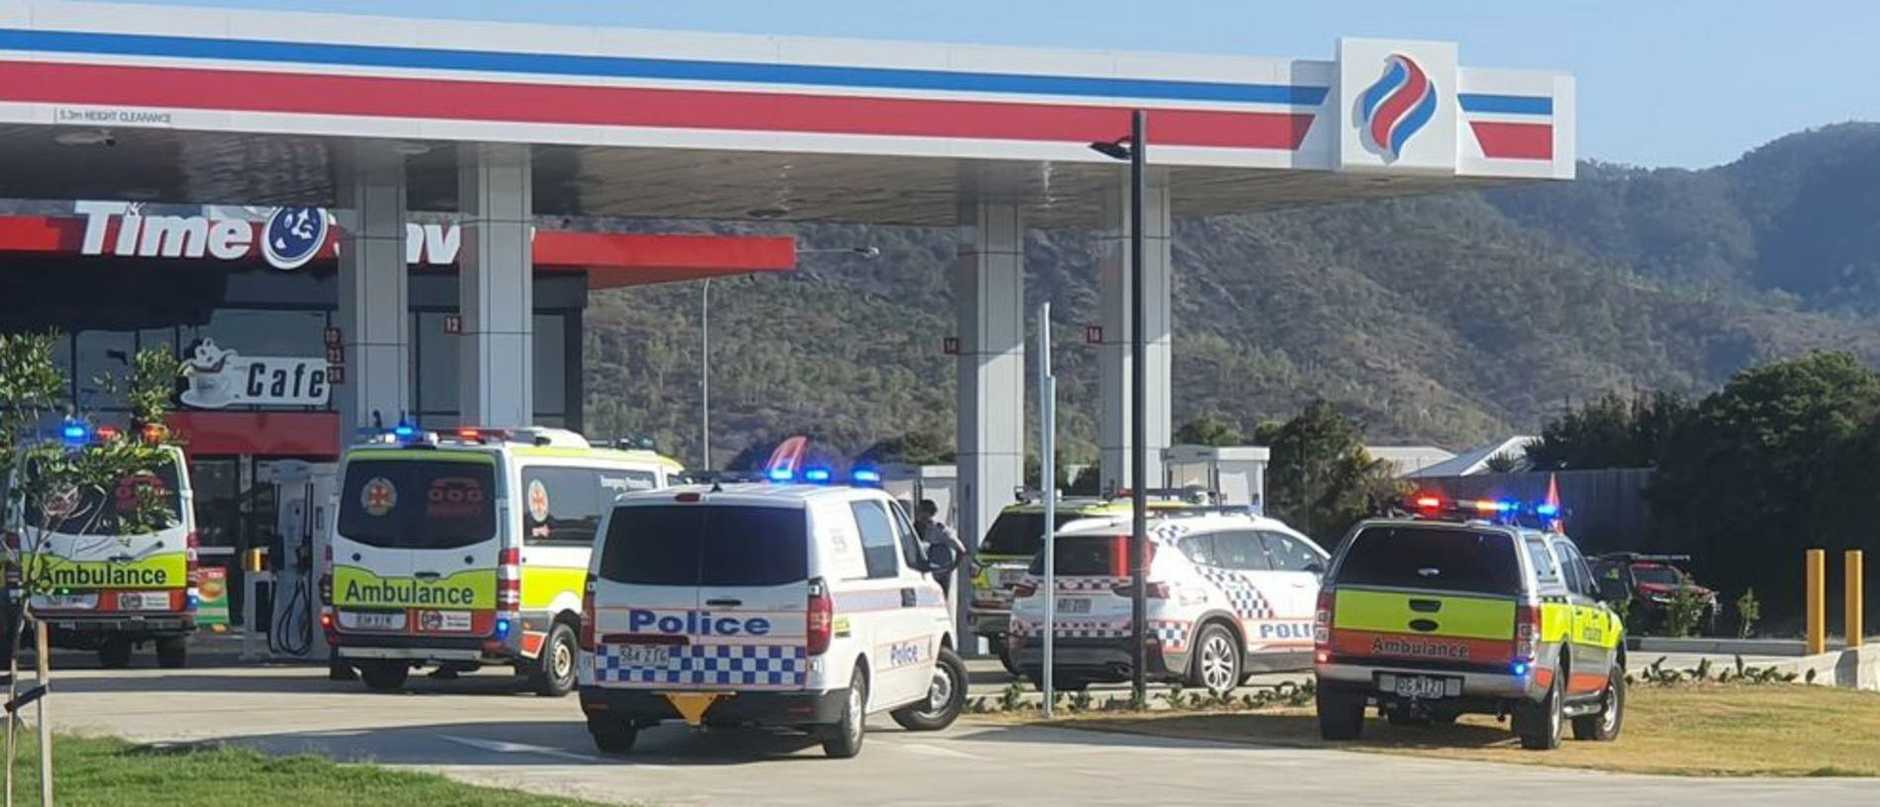 A man has died at a  service station despite the best efforts of civilians and emergency services trying to revive him.